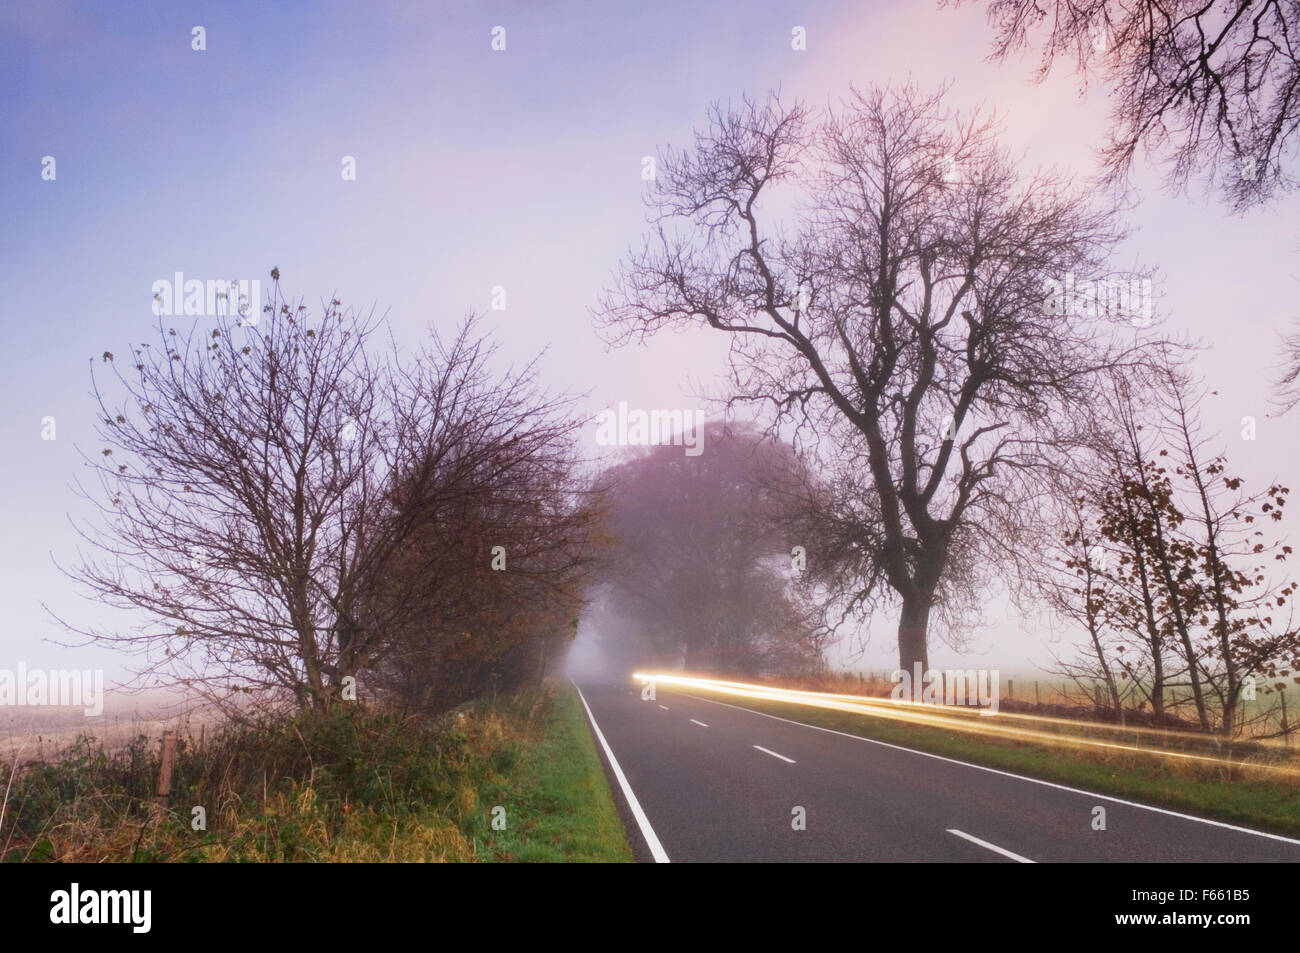 Light trails of car on a country road - Near Marybank, Ross-shire, Scotland. - Stock Image